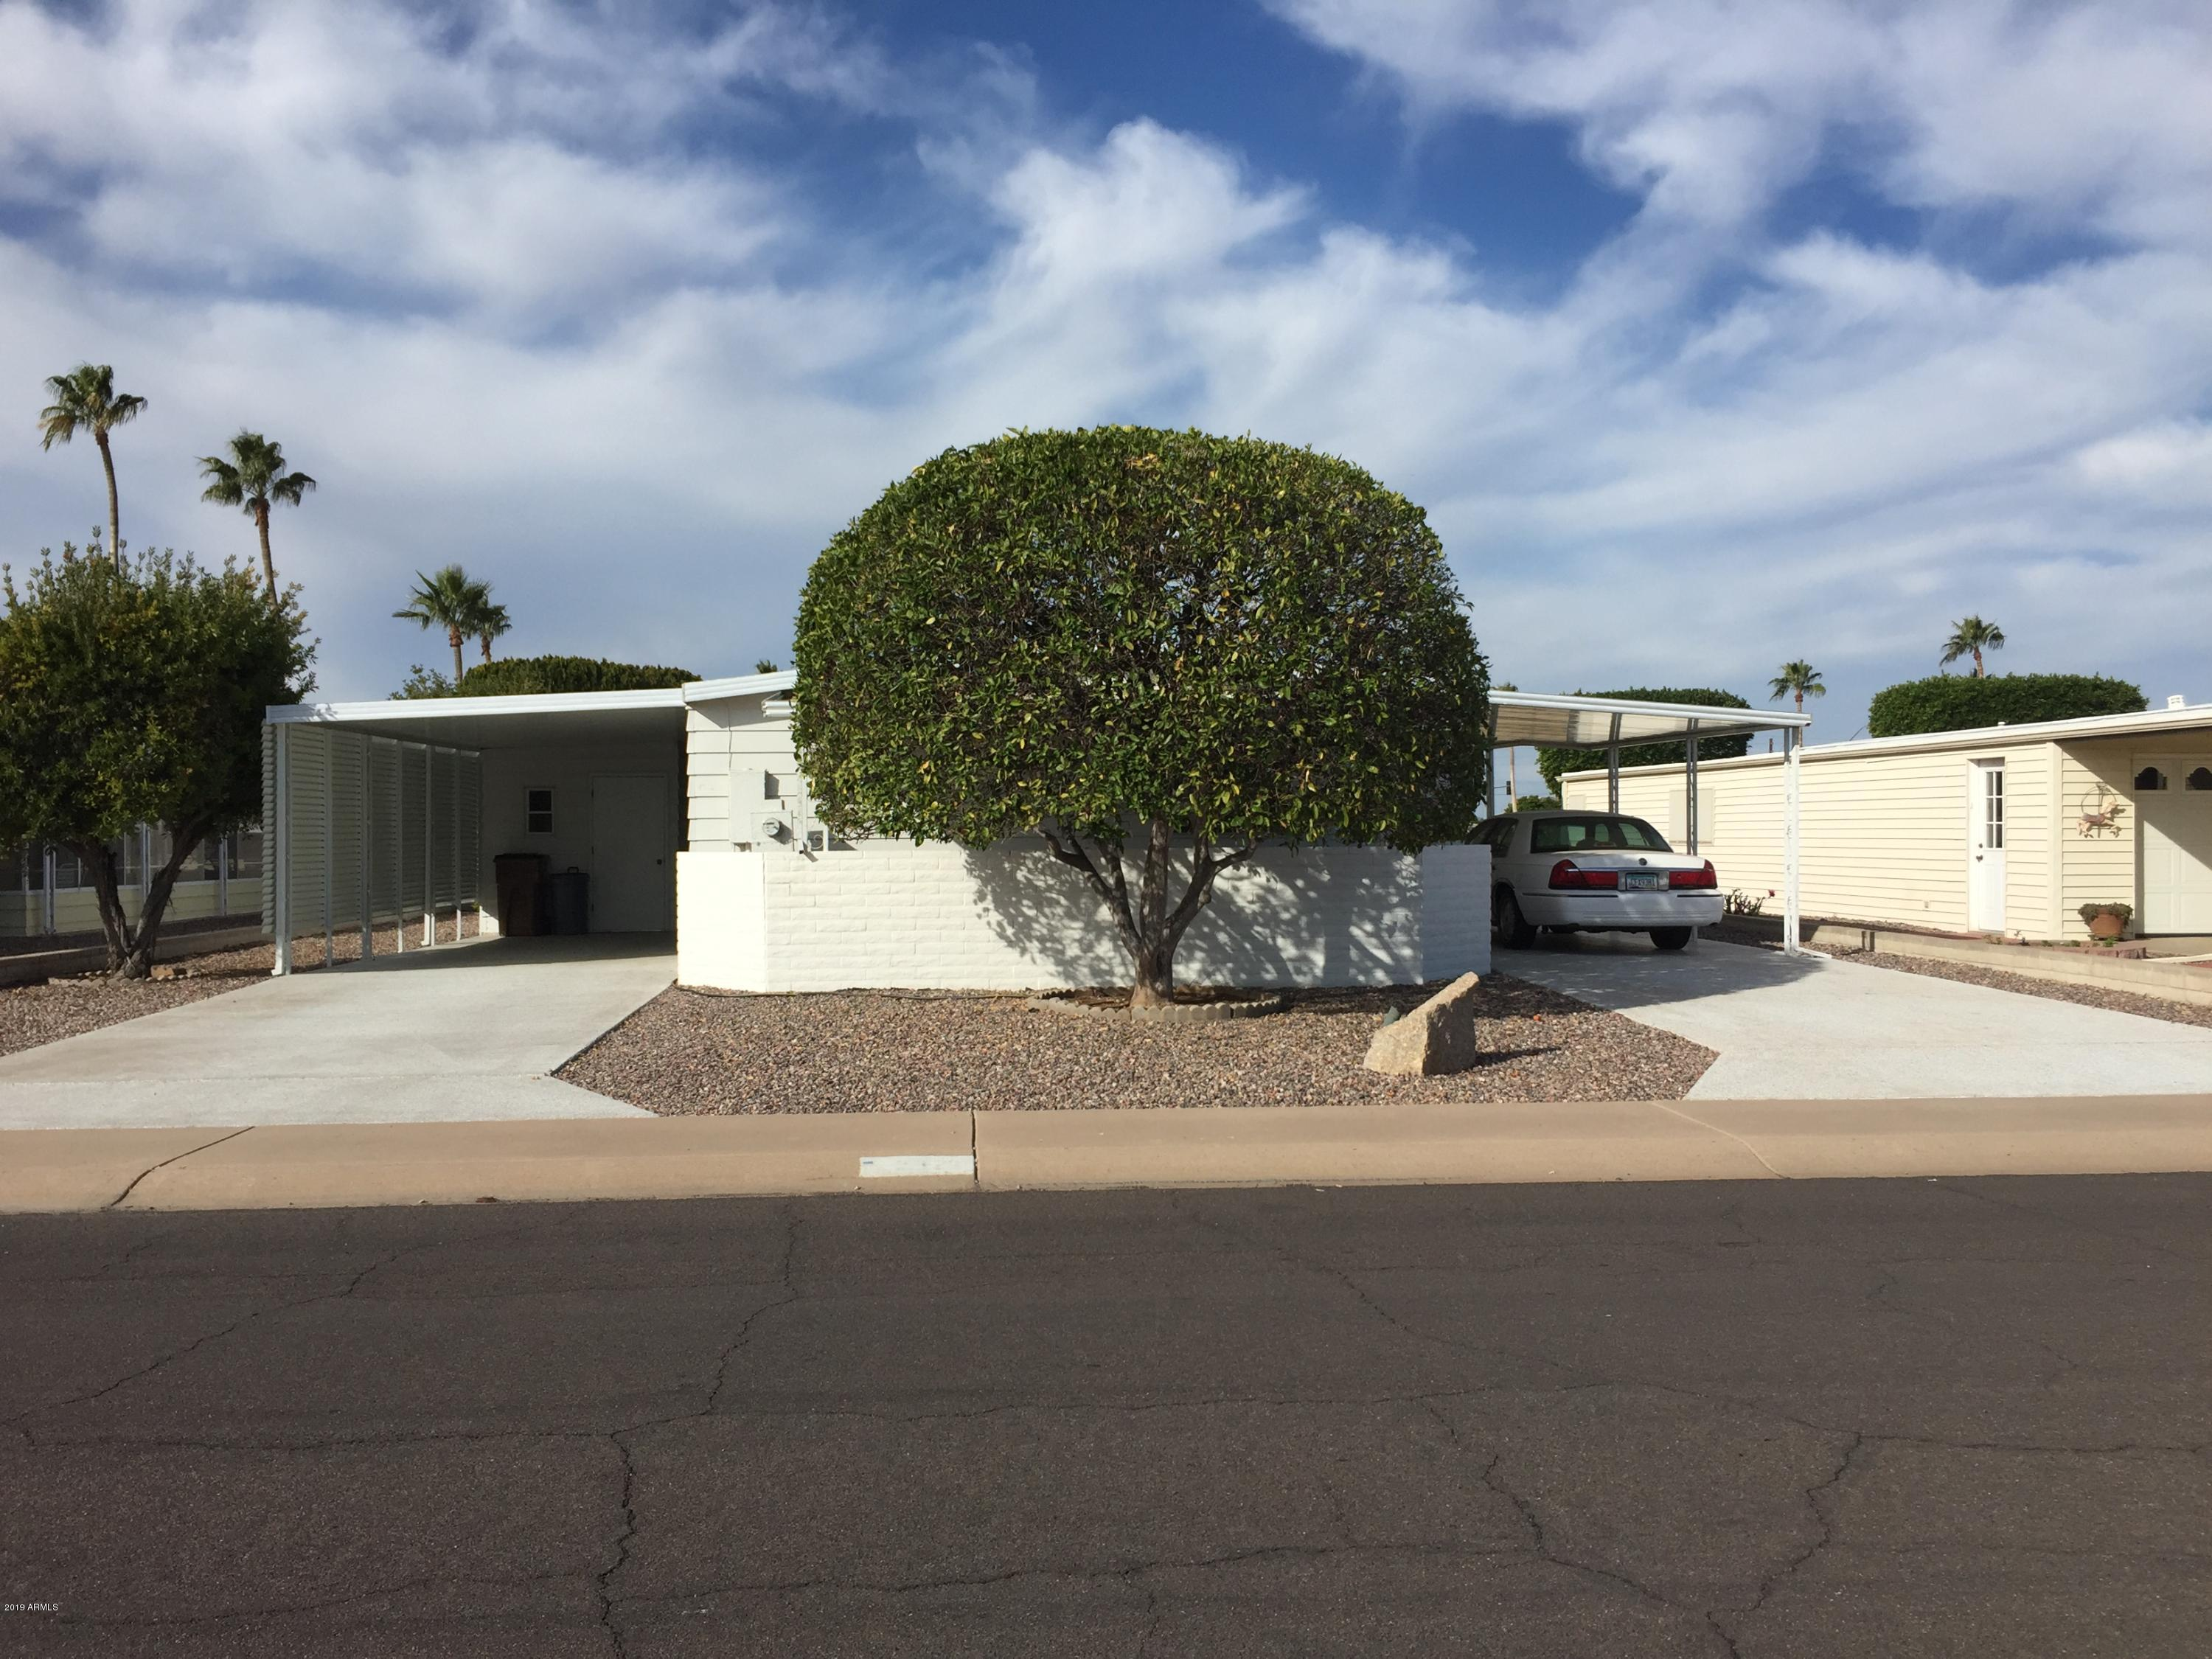 2318 N Nicklaus Drive, Mesa AZ 85215 - Photo 1